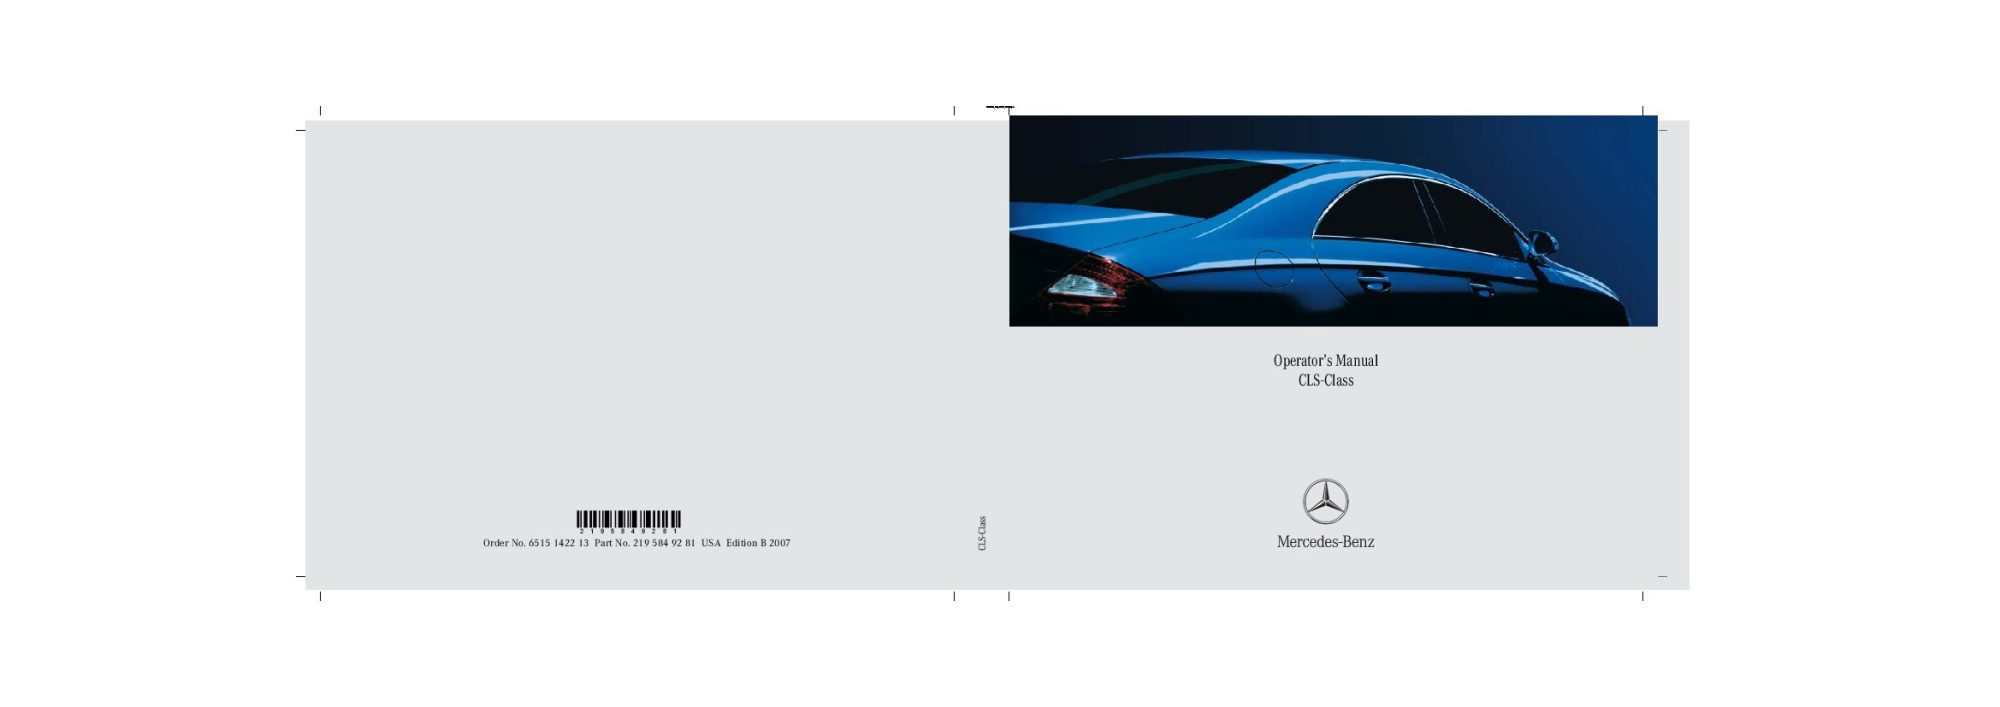 hight resolution of 2007 mercedes benz cls class owner s manual